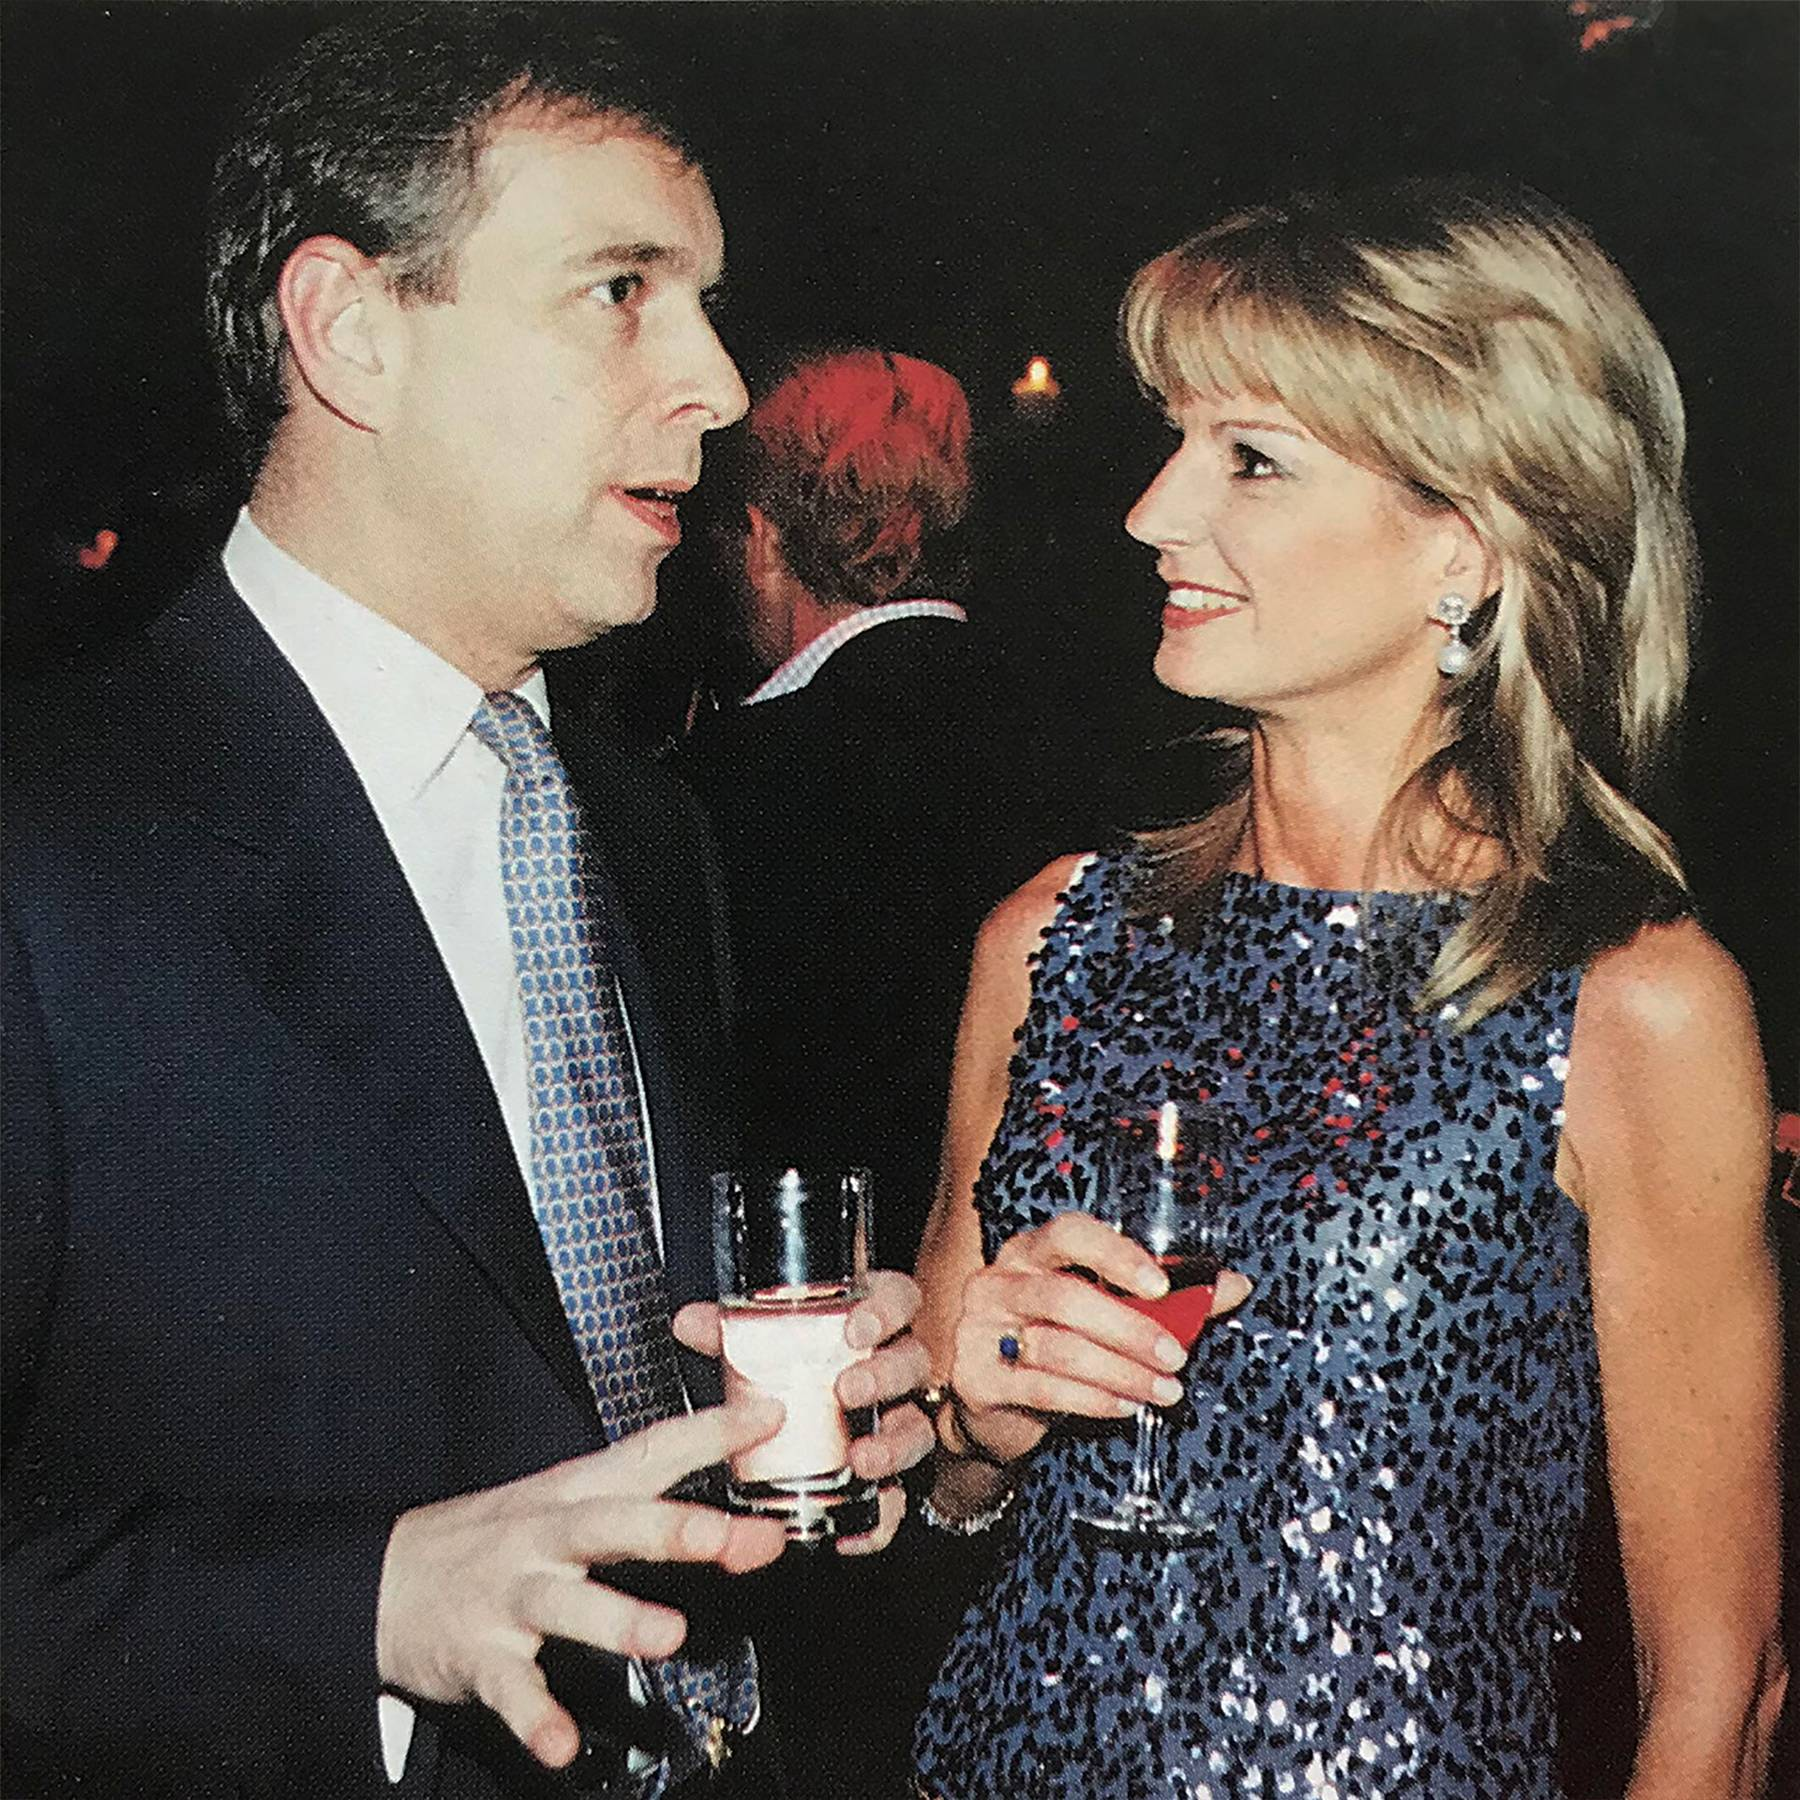 Prince Andrew: Party Prince About Town